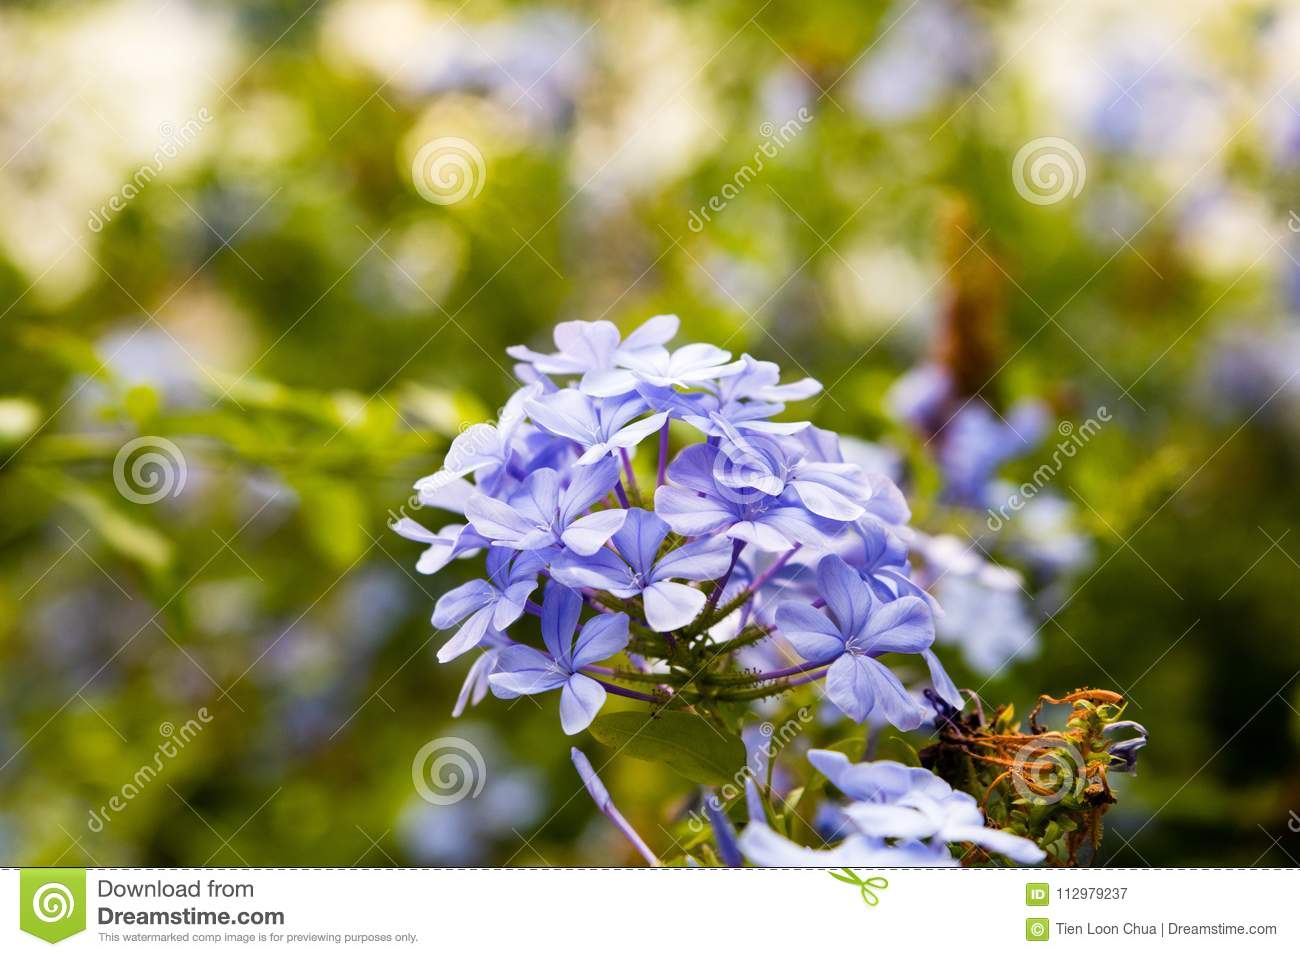 Violet flowers in a cluster